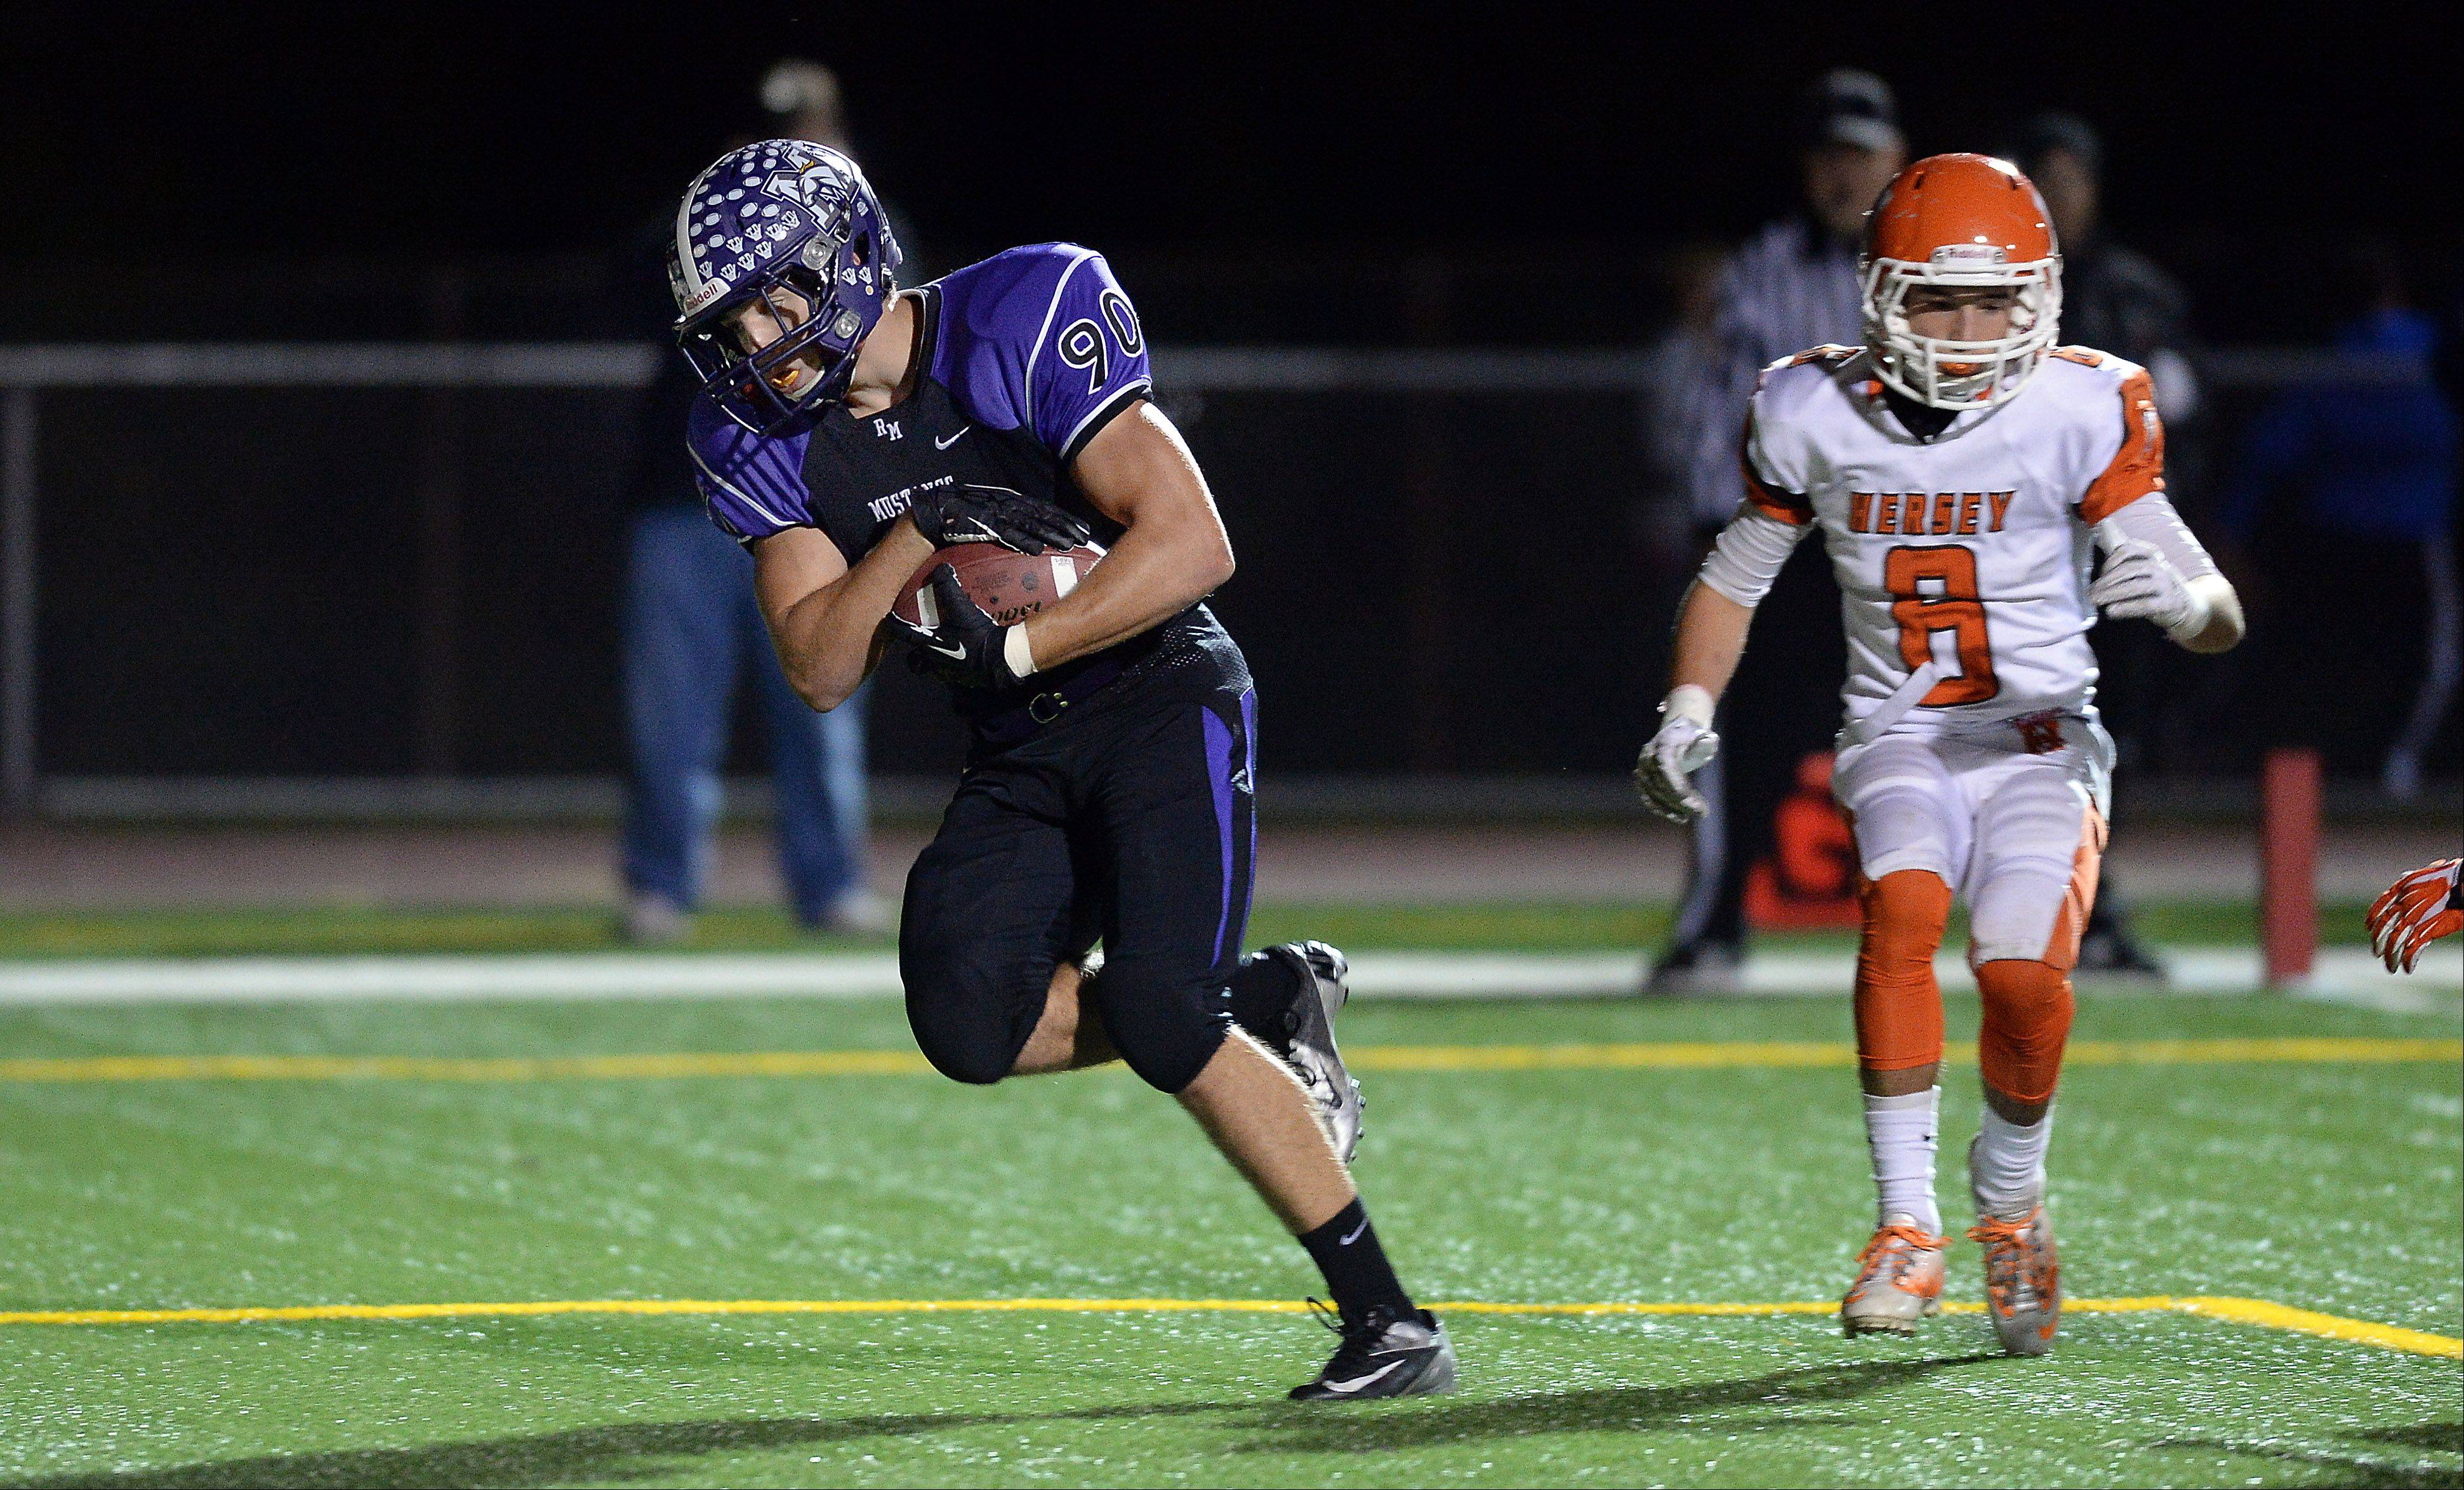 Rolling Meadows' Matt Campbell, on a pass play in the first quarter, runs in a touchdown past Hersey's Cole Monckton.